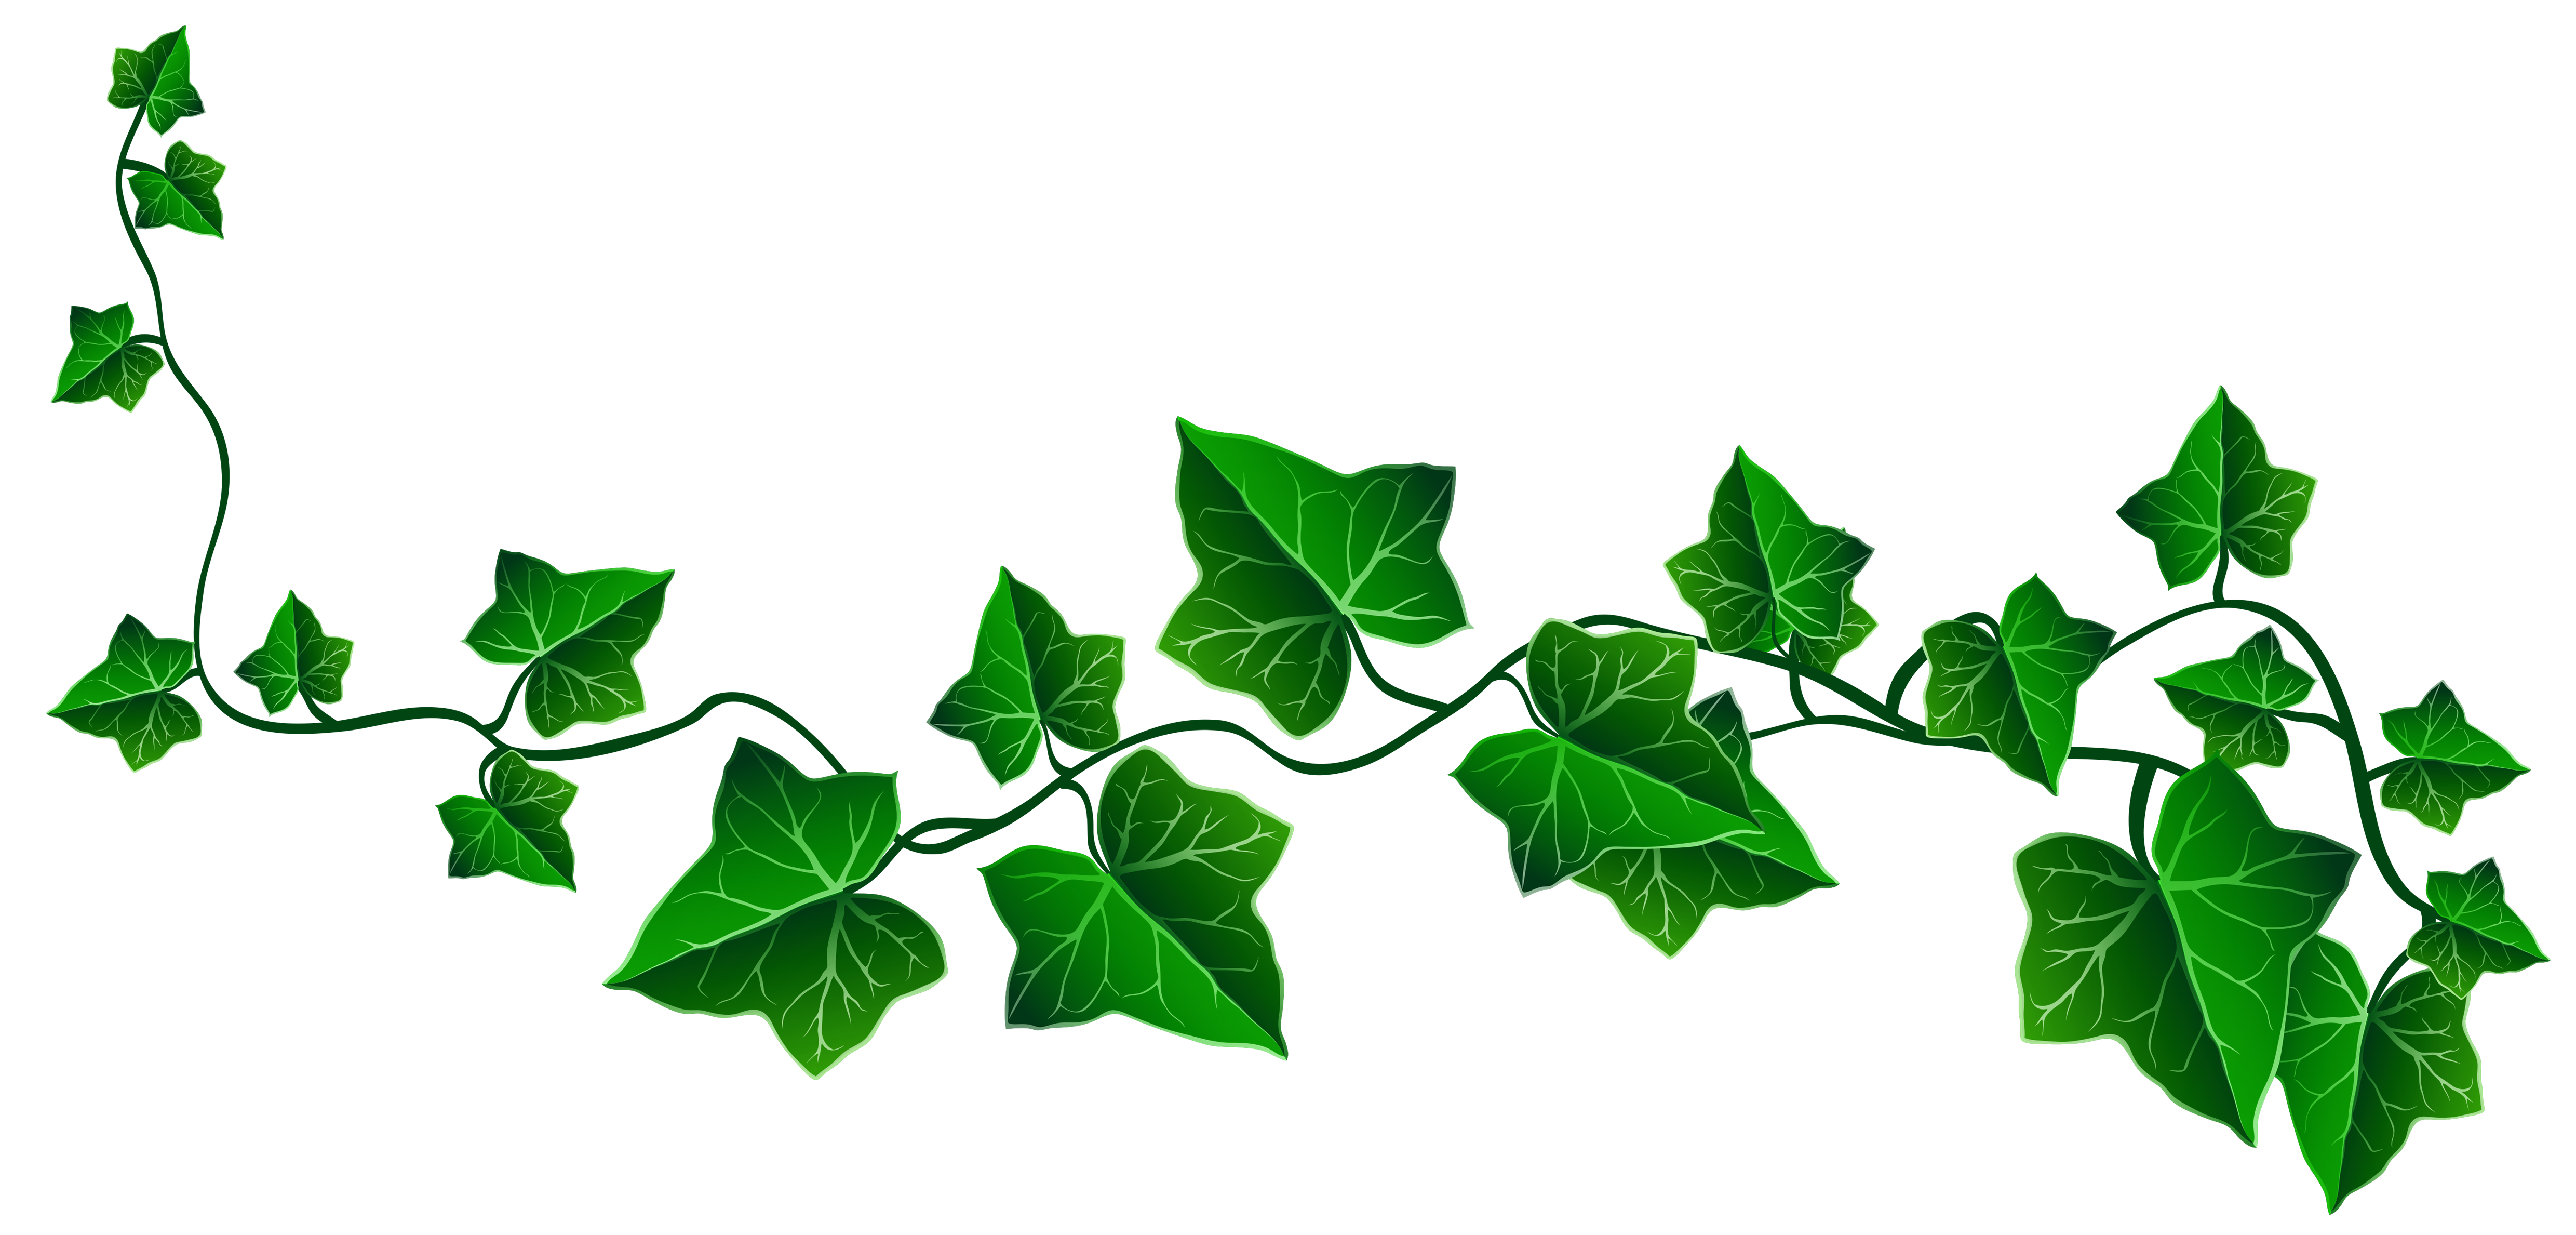 clip free stock Ivy drawing clip art. Vine clipart